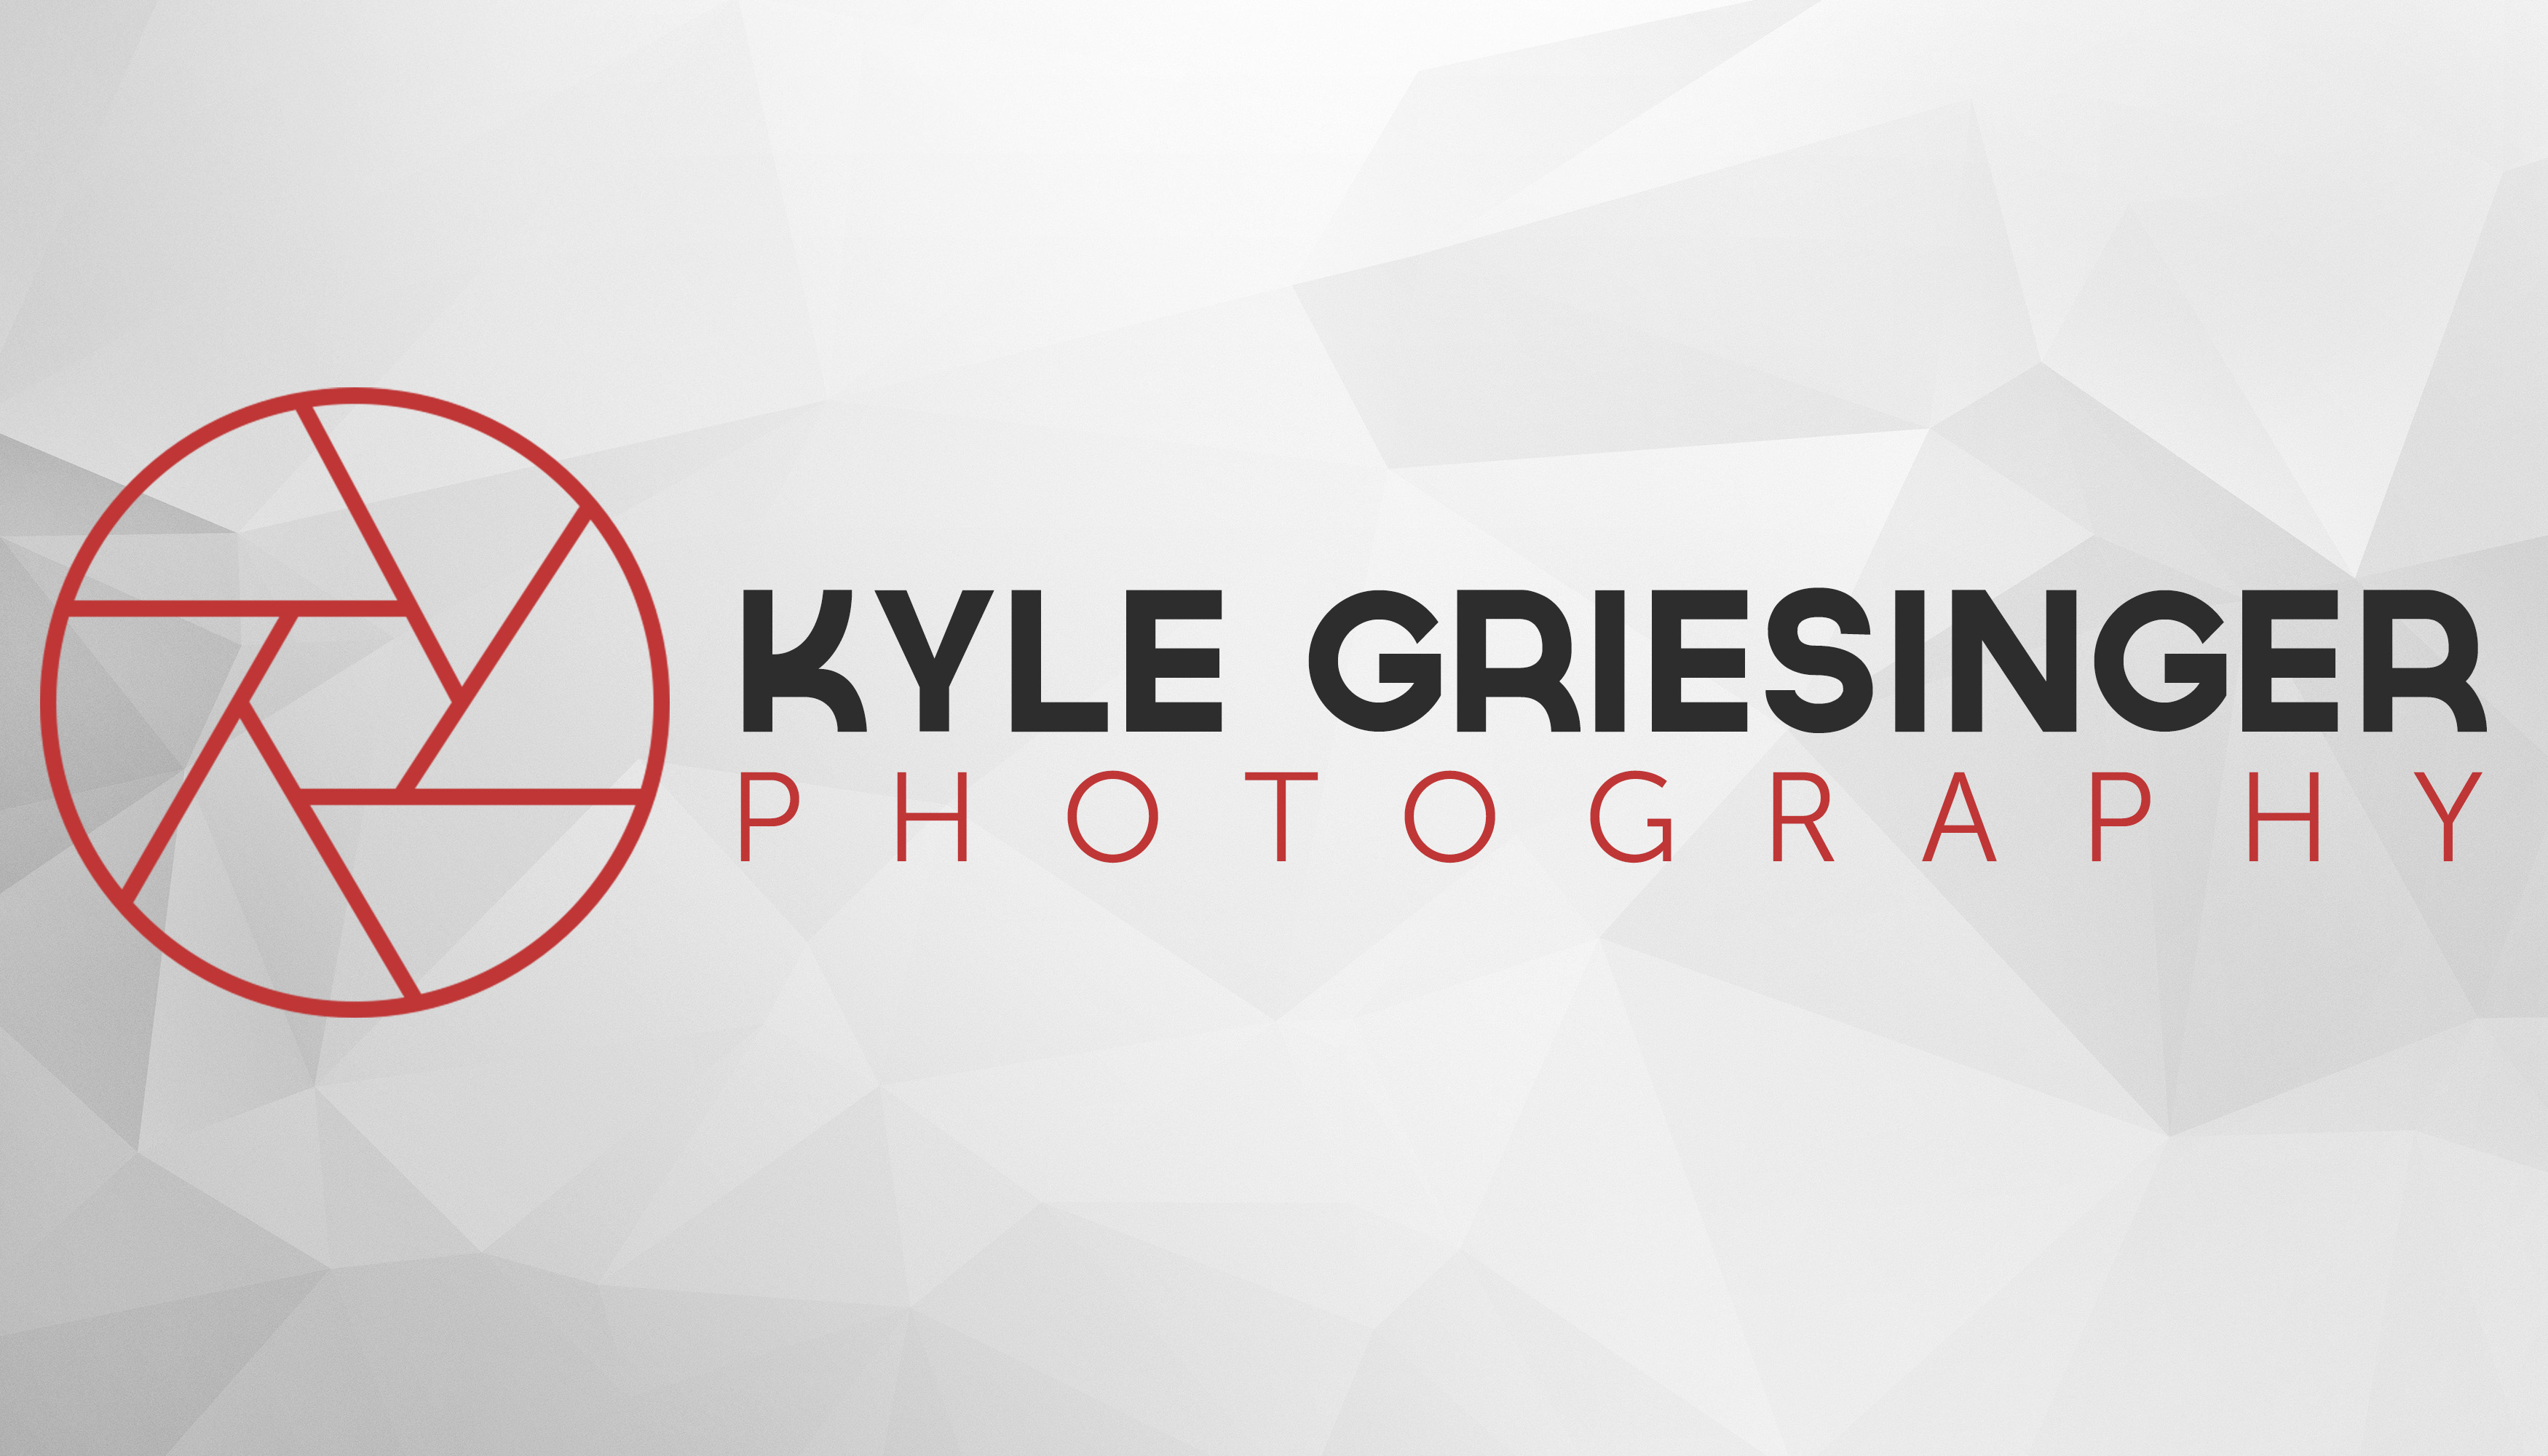 Kyle Griesinger Photography